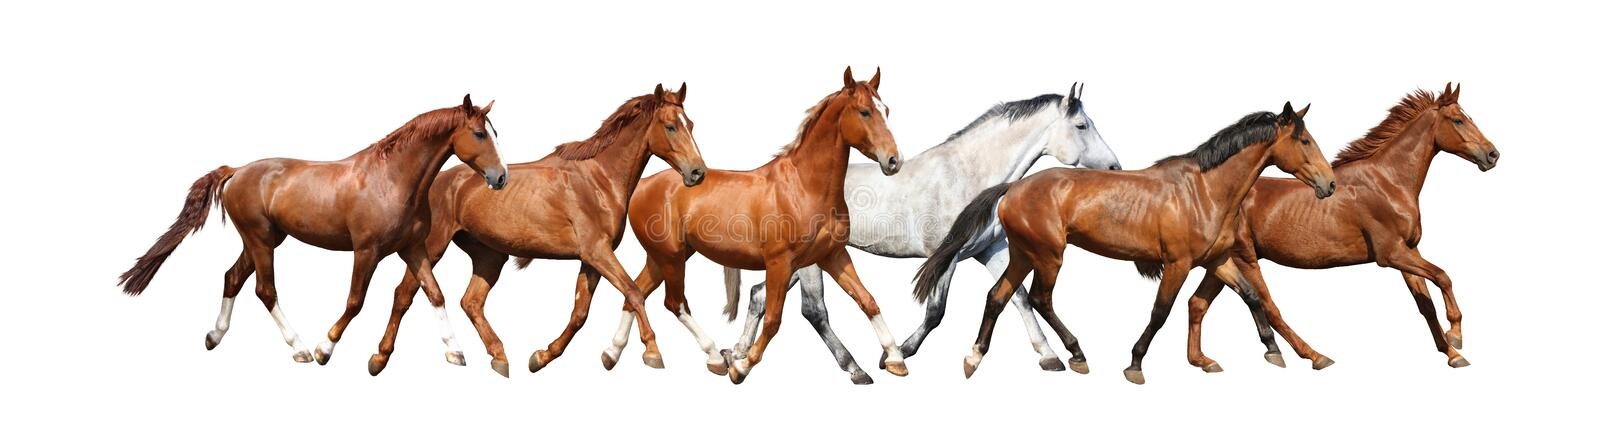 Herd of wild horses running free on white background royalty free stock images